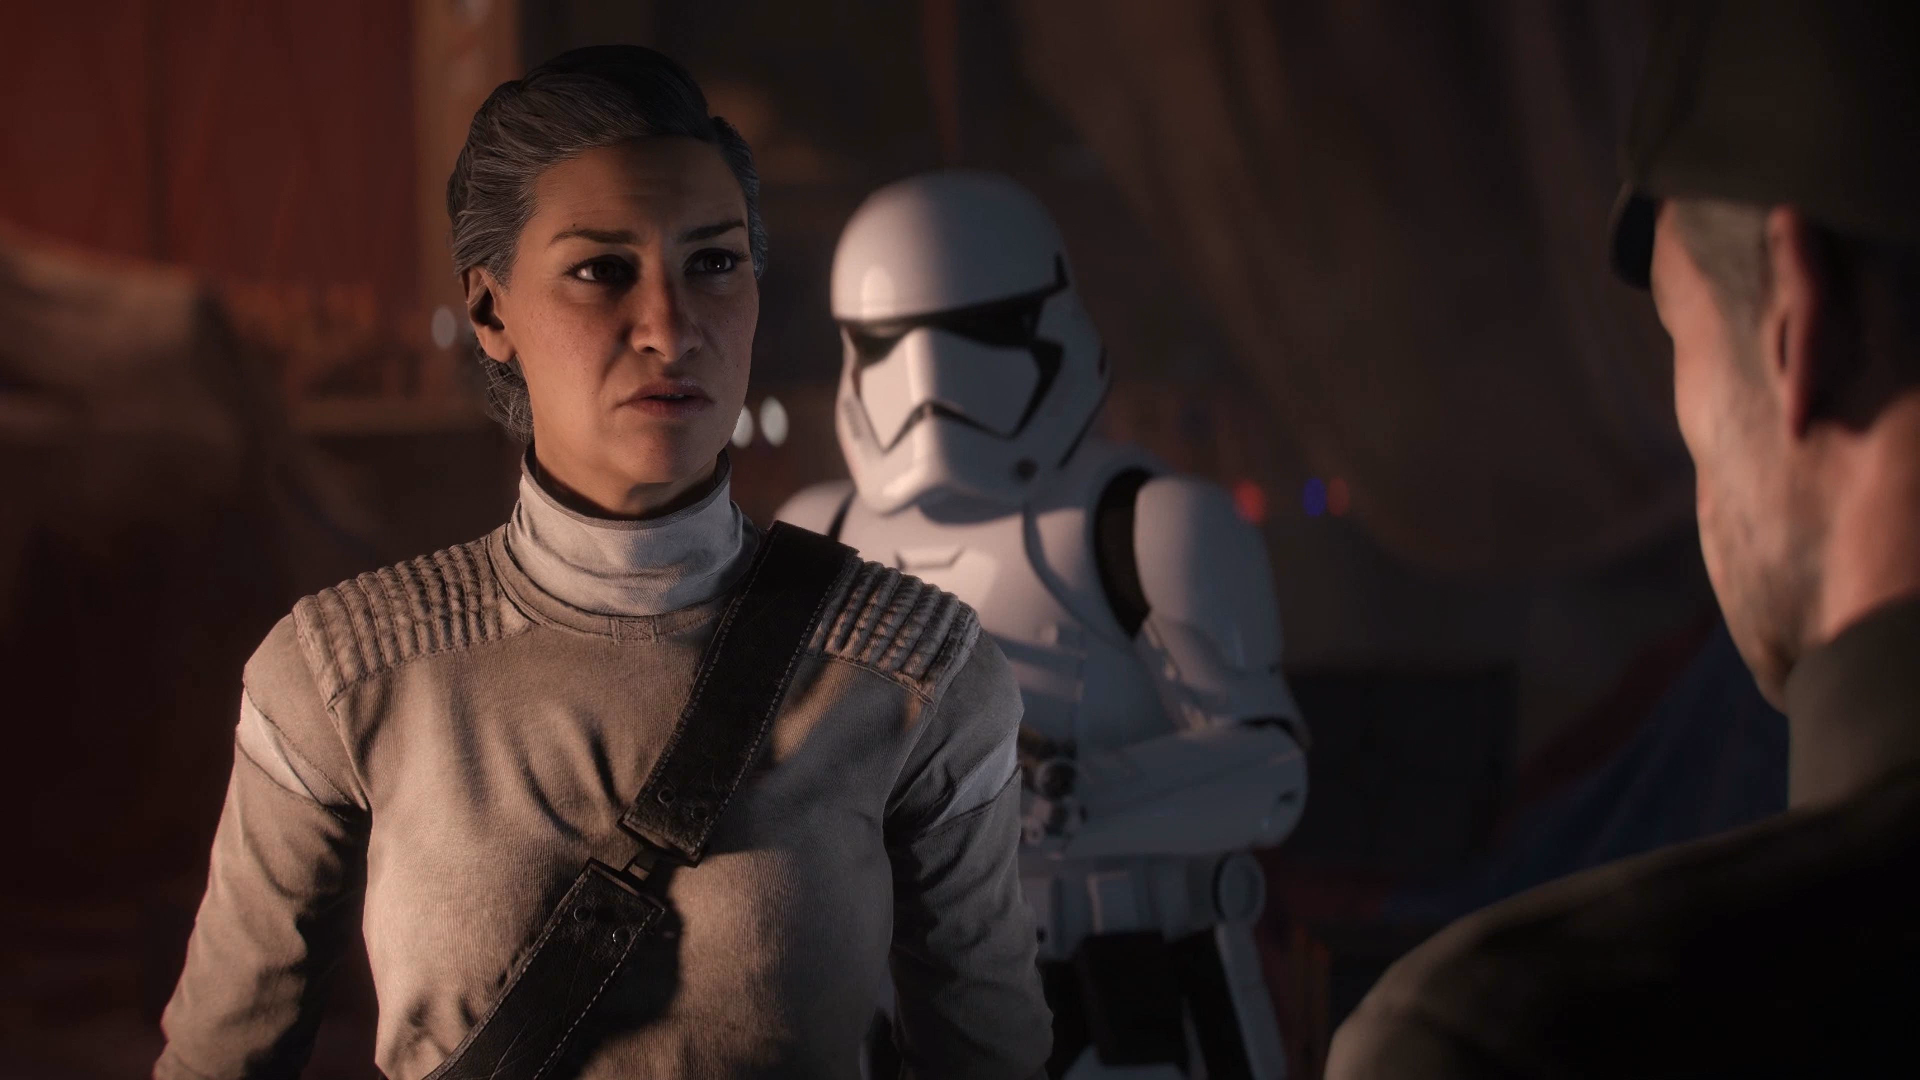 Battlefront 2 DLC Tries To Close Story Cliffhanger, Disappoints